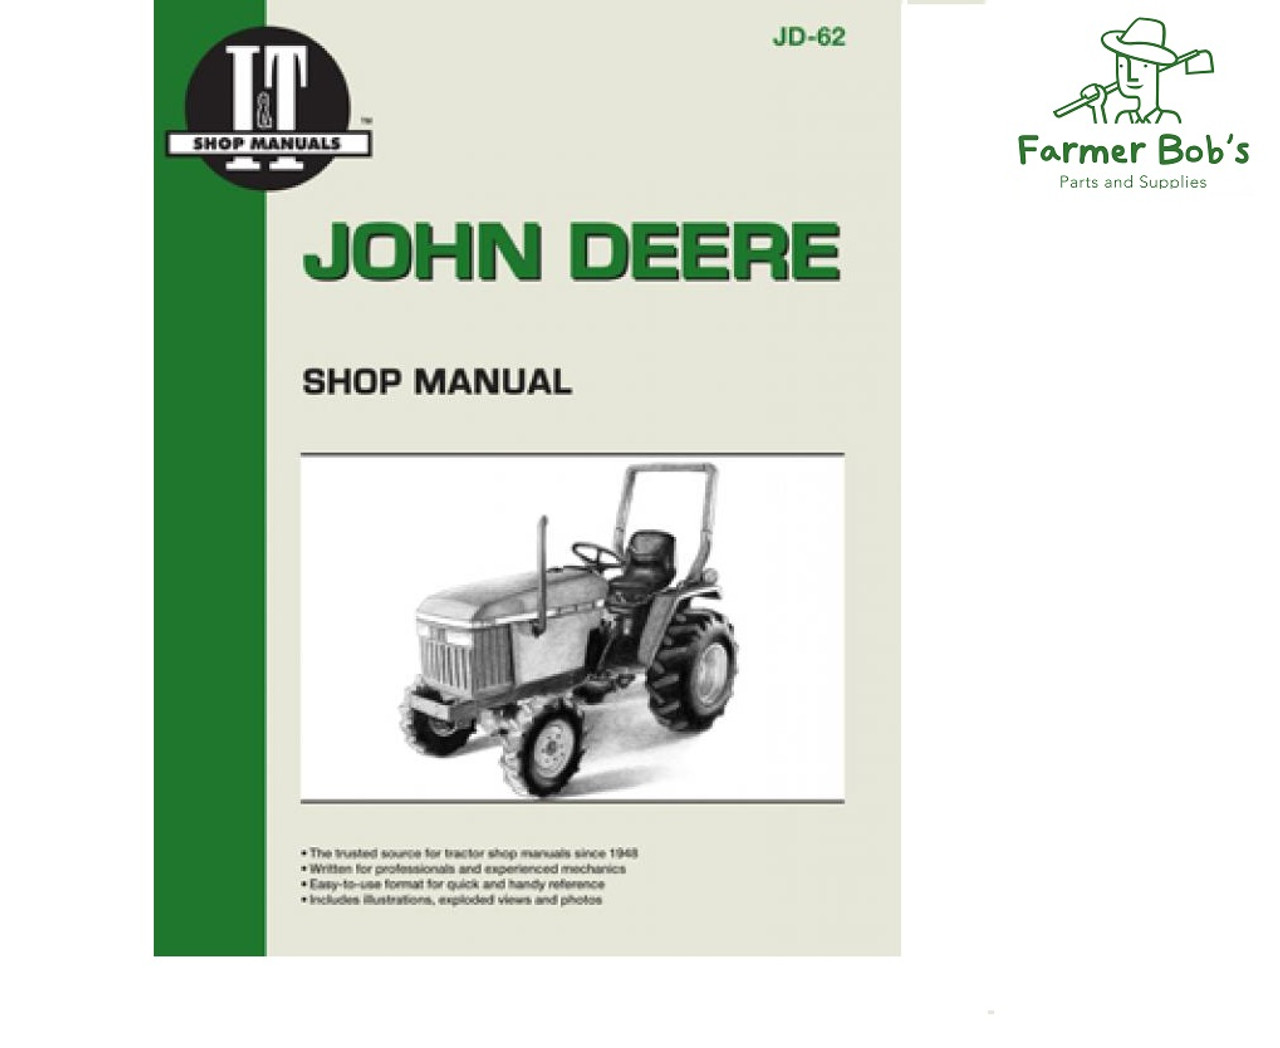 small resolution of jd62 i t shop manuals john deere 670 770 870 970 and 1070